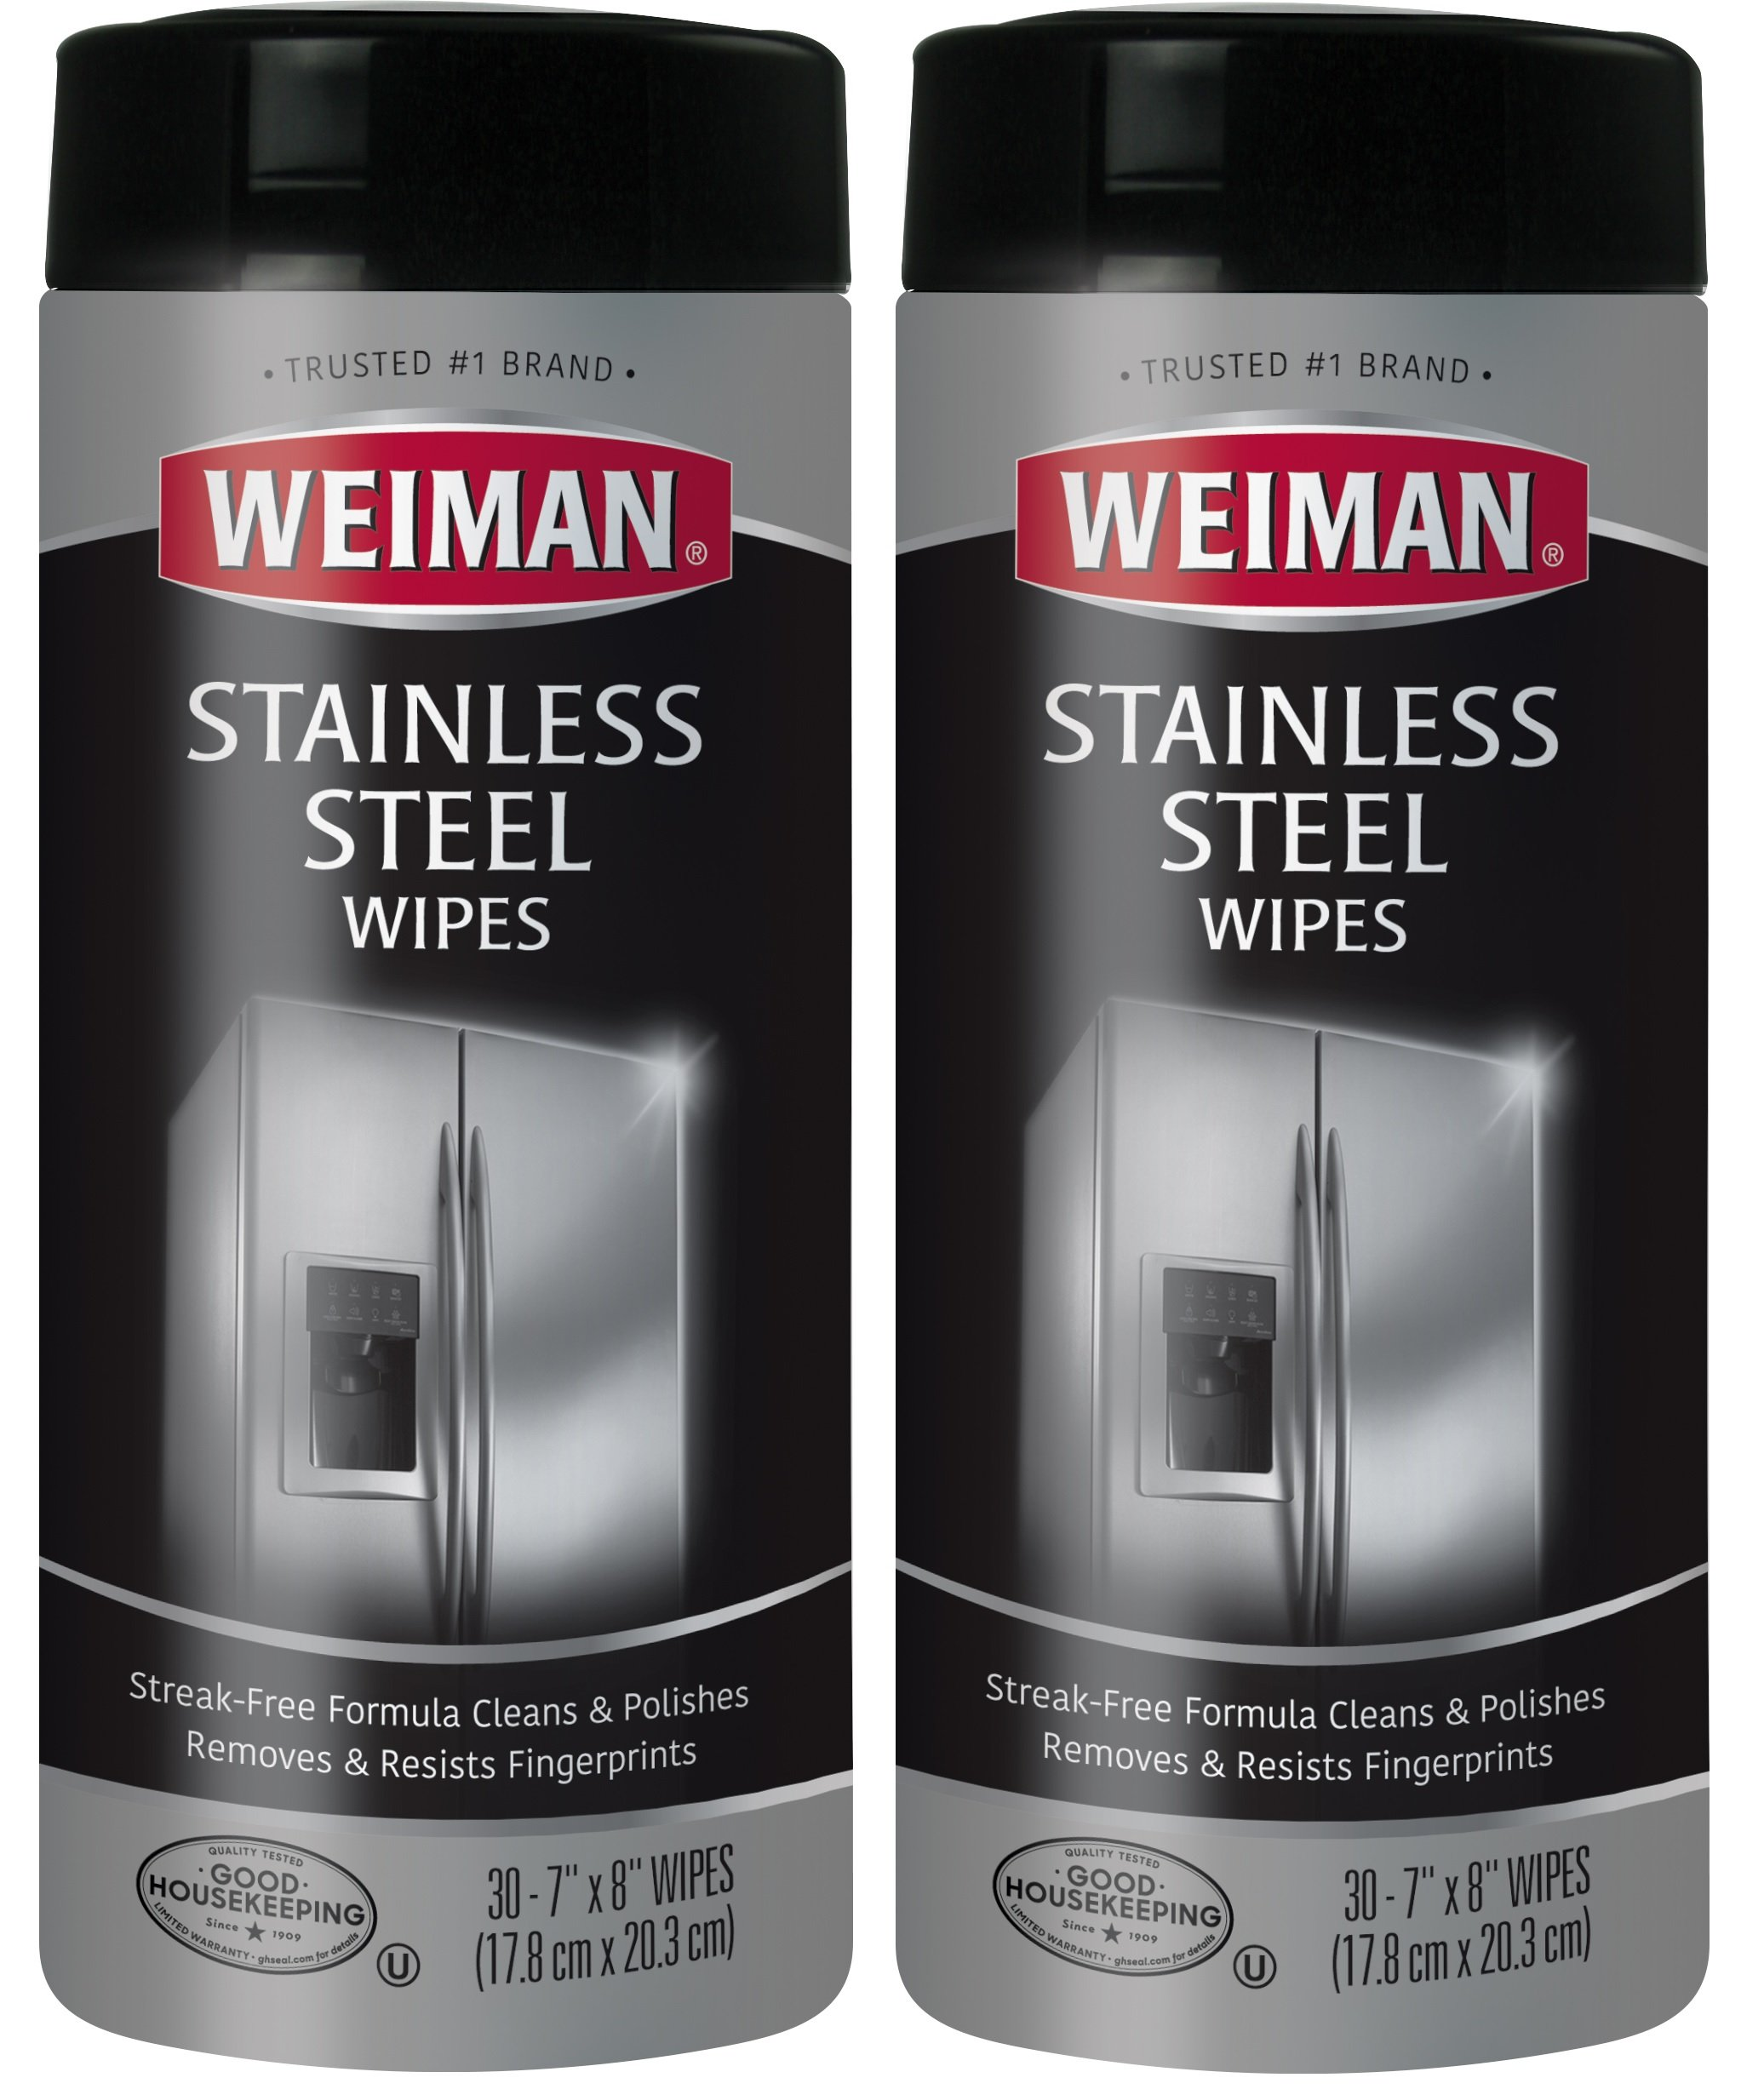 Weiman Stainless Steel Cleaning Wipes [2 Pack] Removes Fingerprints, Residue, Water Marks and Grease From Appliances - Works Great on Refrigerators, Dishwashers, Ovens, Grills and More by Weiman